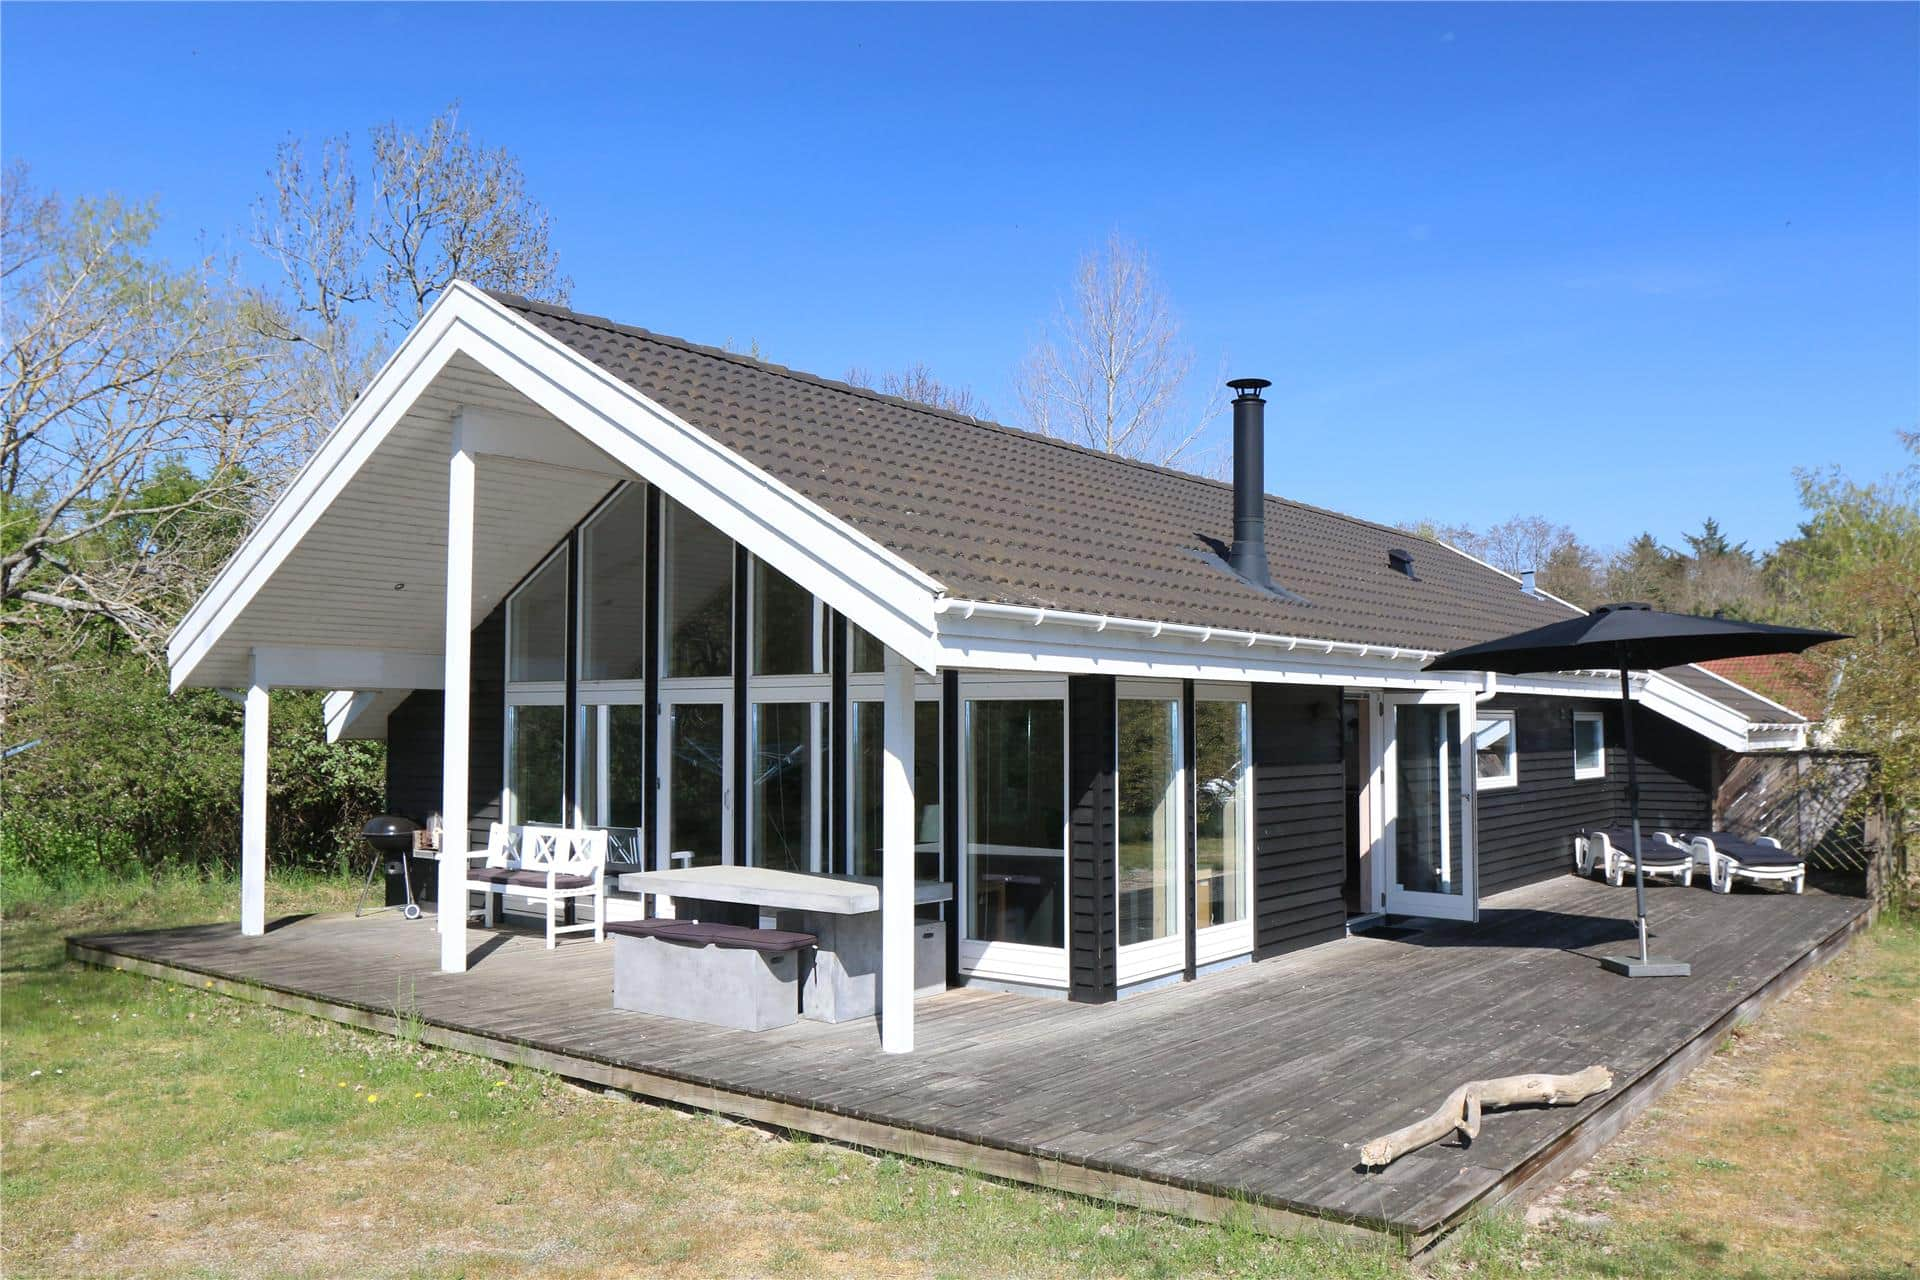 Image 1-10 Holiday-home 1441, Strandparken 14, DK - 3720 Aakirkeby